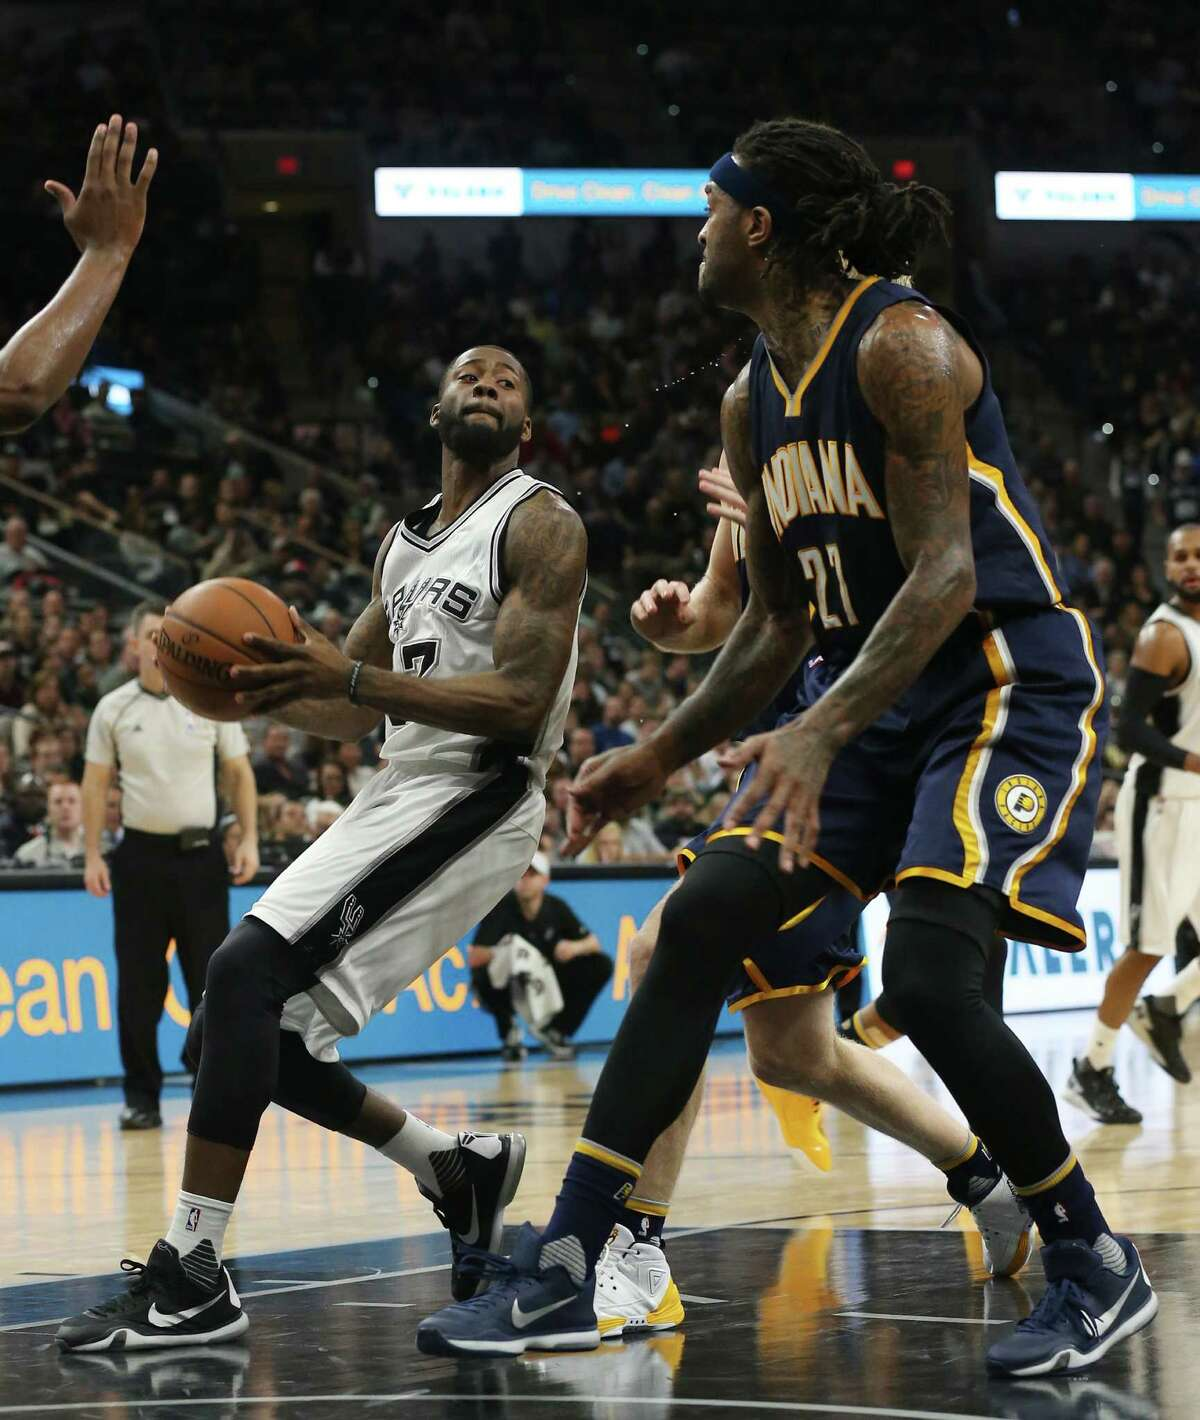 San Antonio Spurs' Jonathon Simmons looks to pass the ball as Indiana Pacers' Jordan Hill defends during the second half at the AT&T Center, Monday, Dec. 21, 2015. The Spurs won, 106-92.